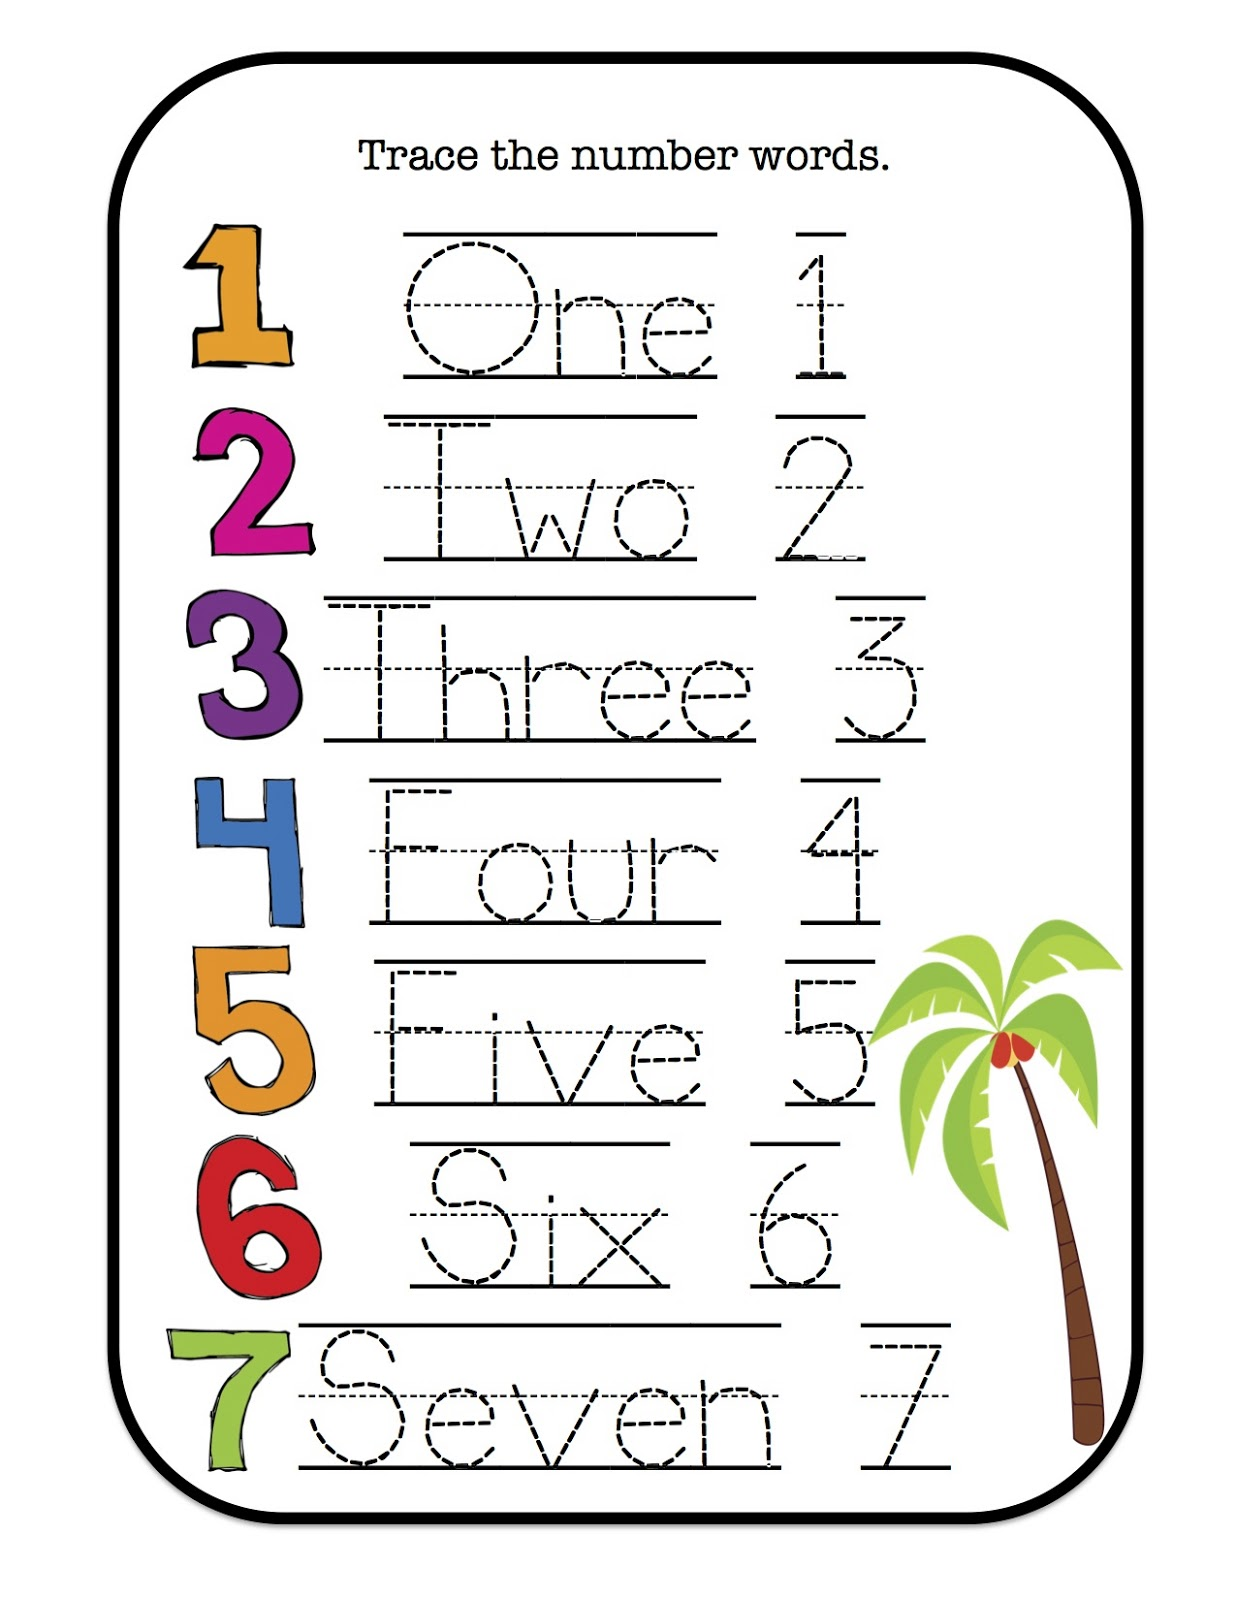 Worksheet Trace Numbers 1-10 traceable numbers 1 10 worksheets imperialdesignstudio number cards 10